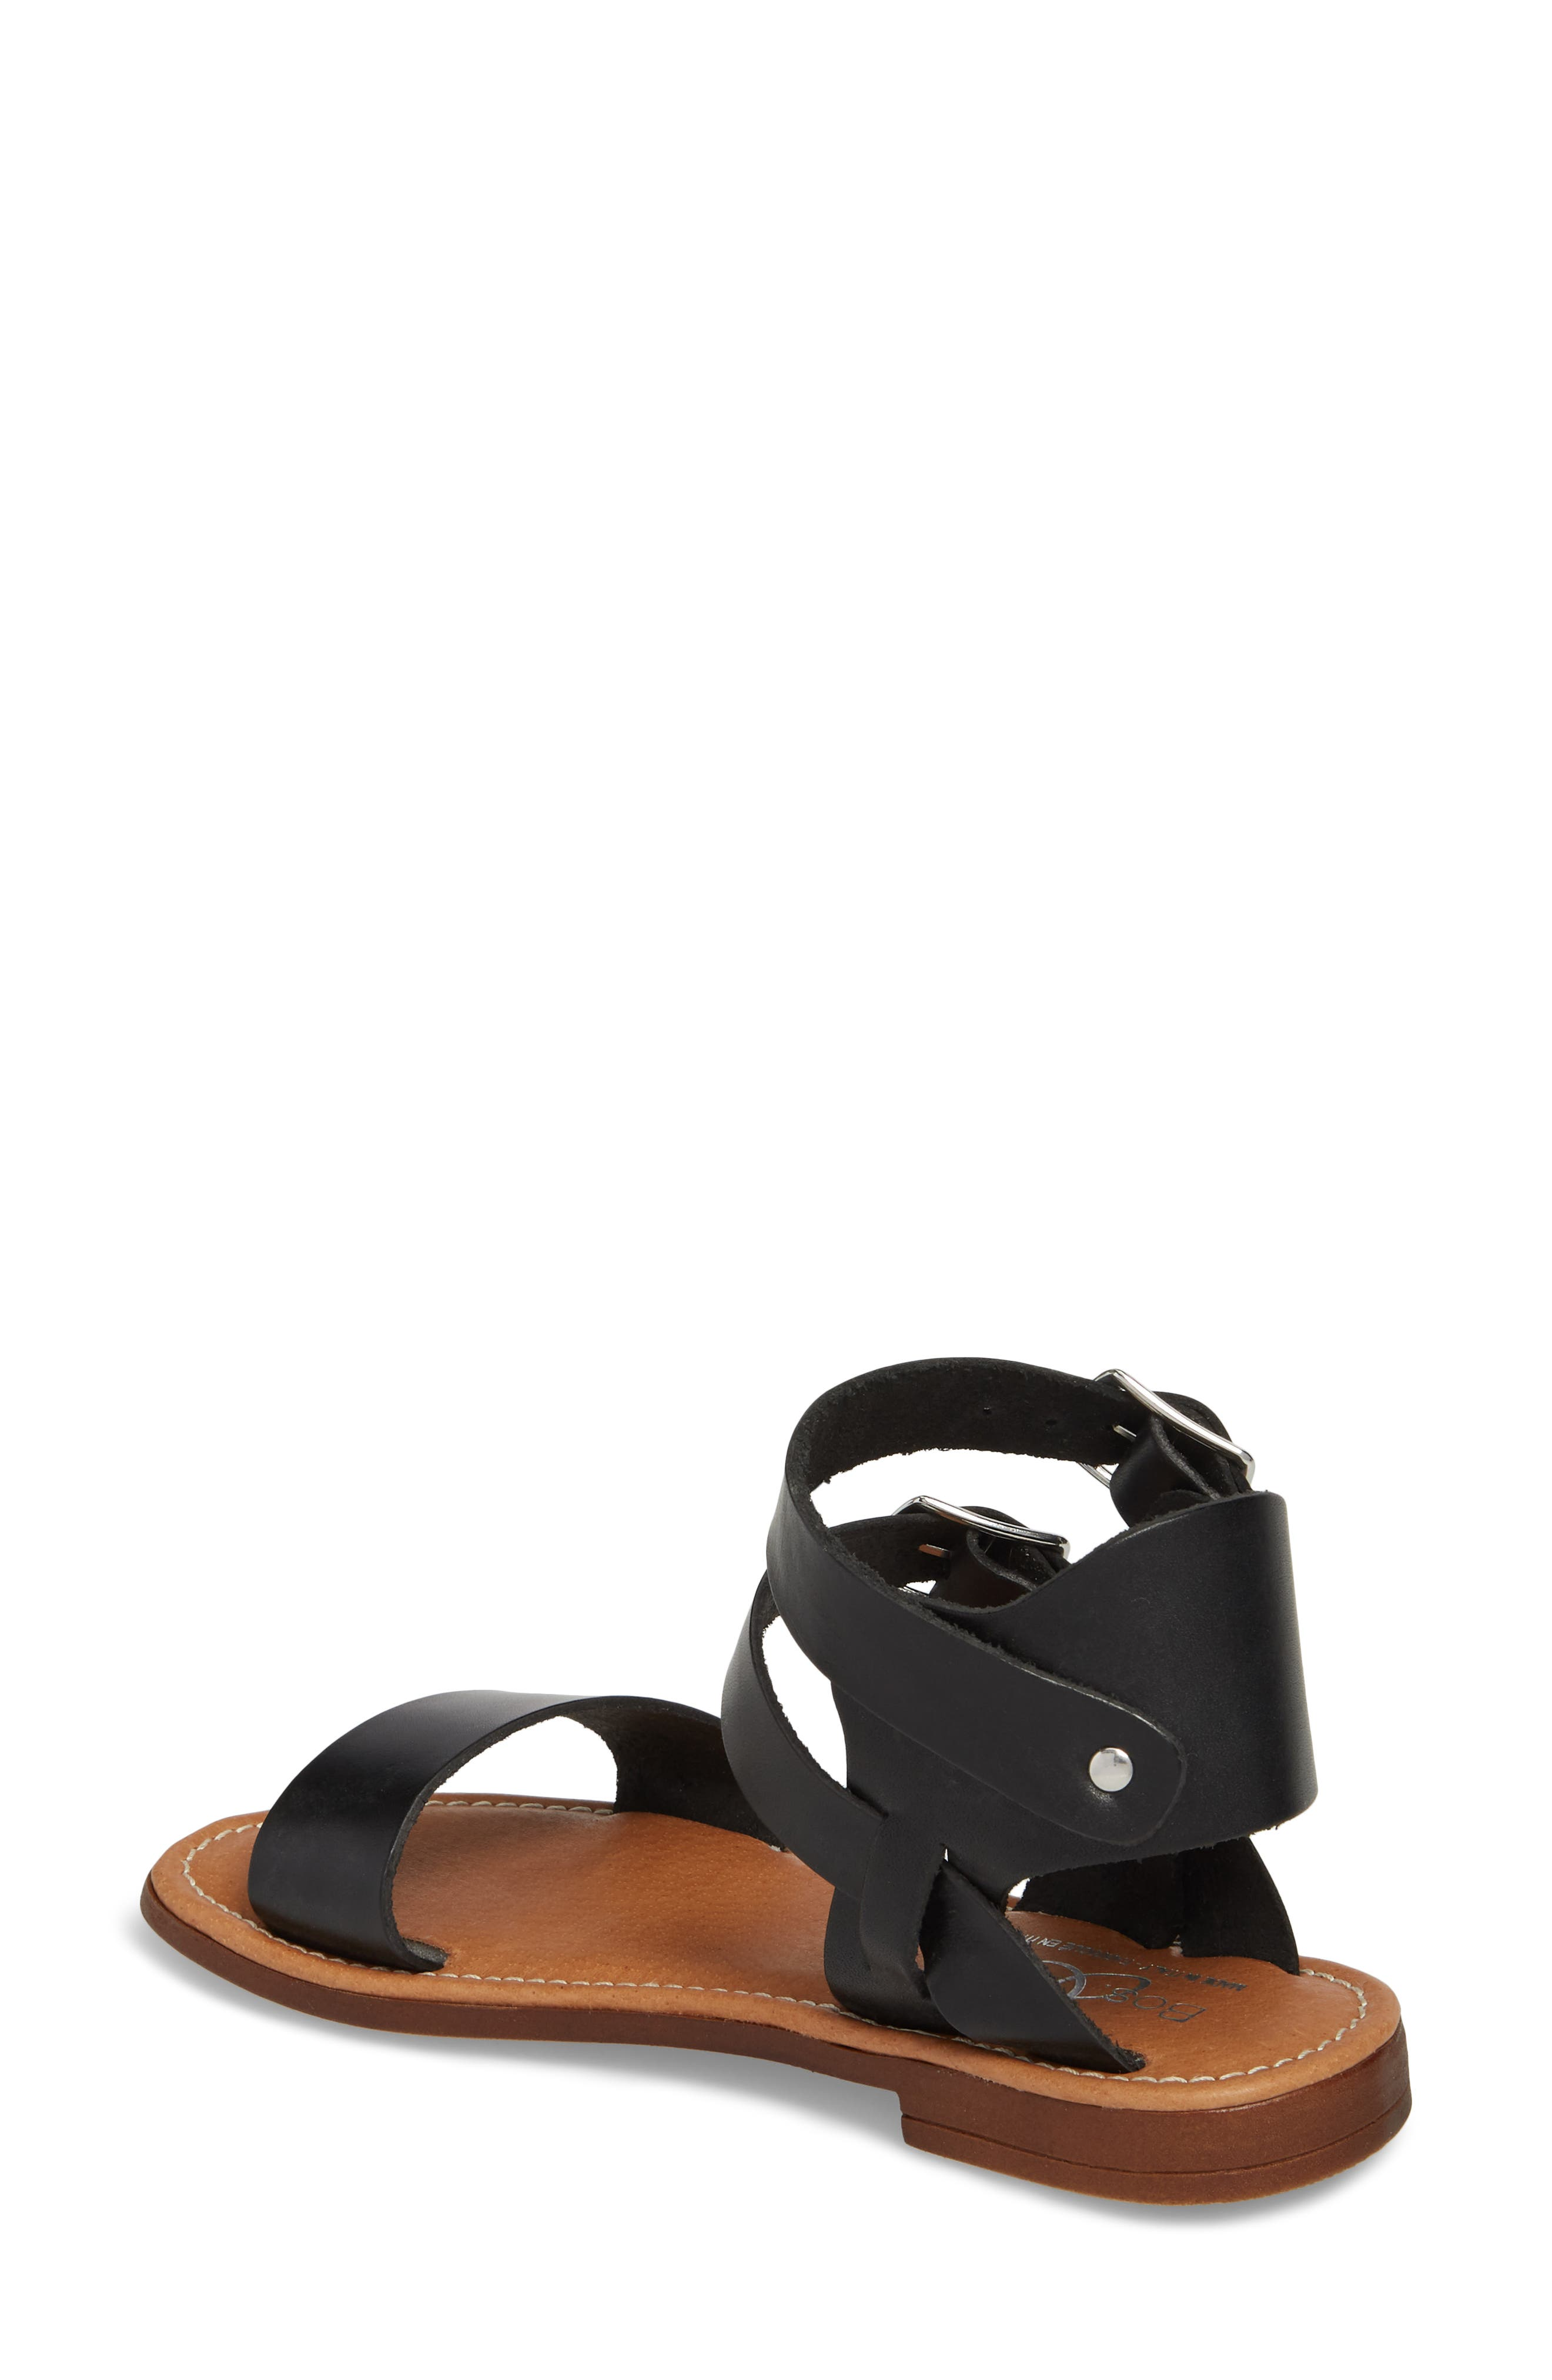 Ida Mid Top Sandal,                             Alternate thumbnail 2, color,                             BLACK VACCHETTA LEATHER